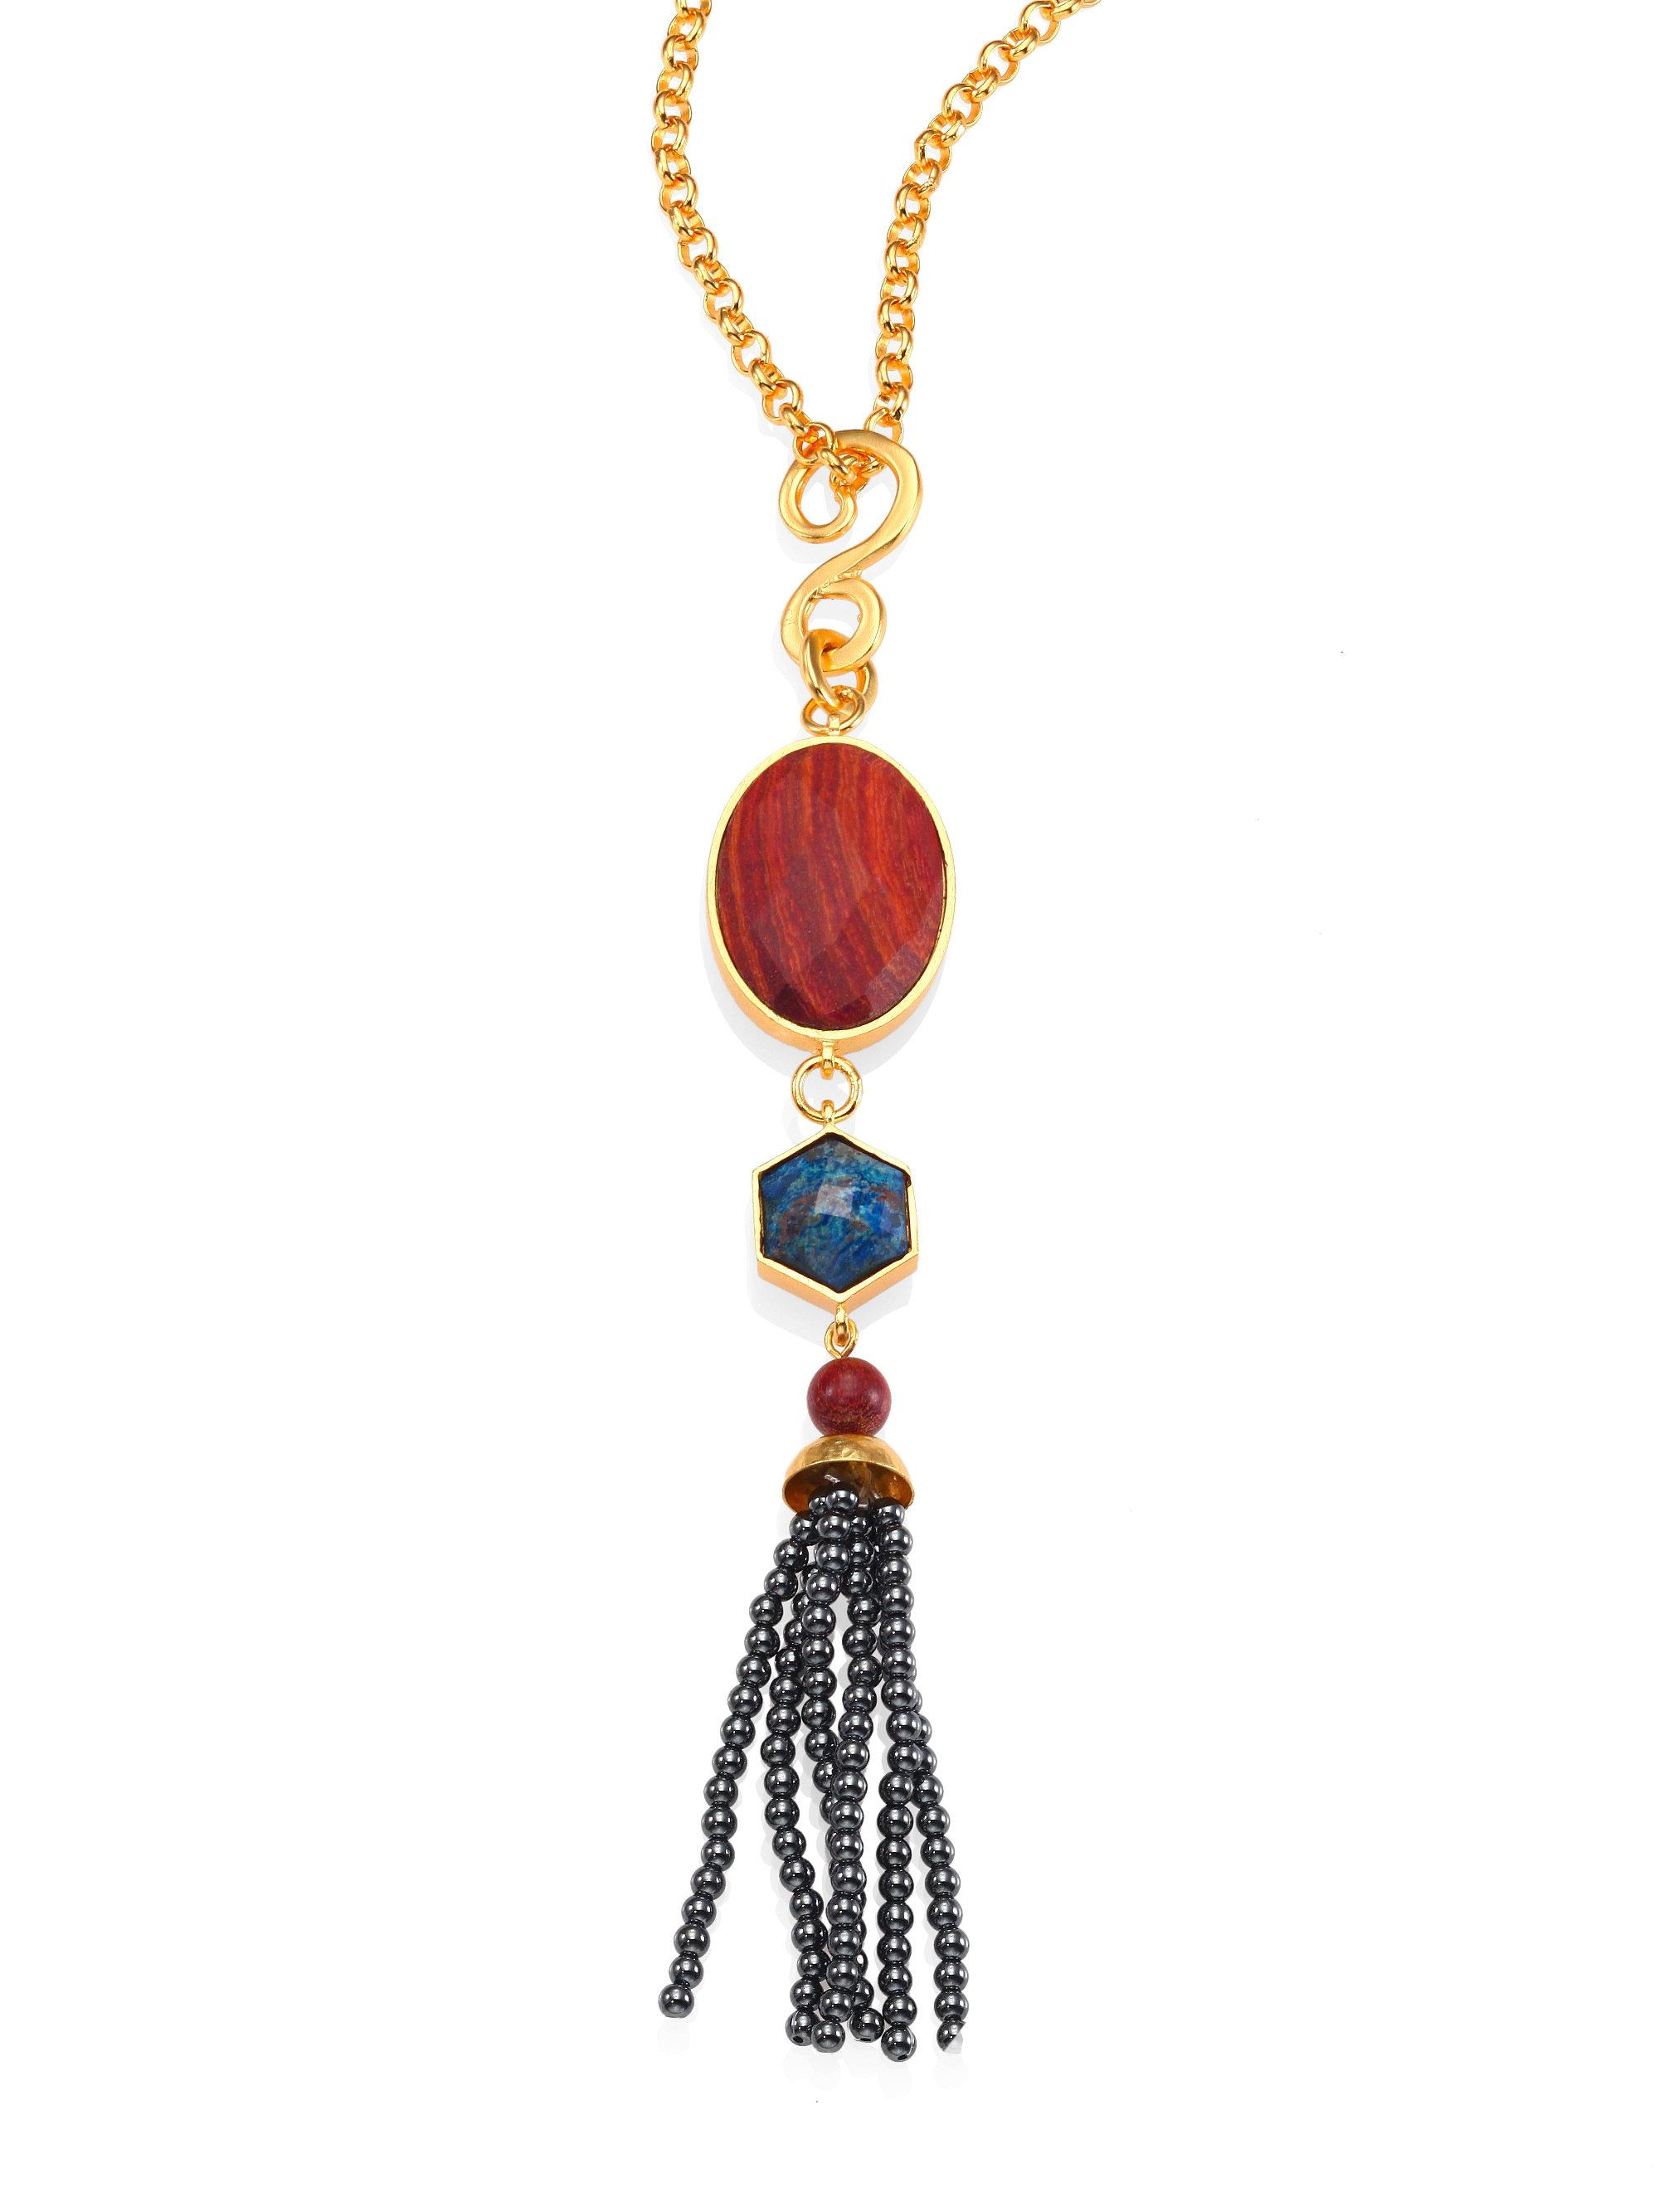 winkel long marrakech beekmans en necklace with pendant red all gold jewelry ellen